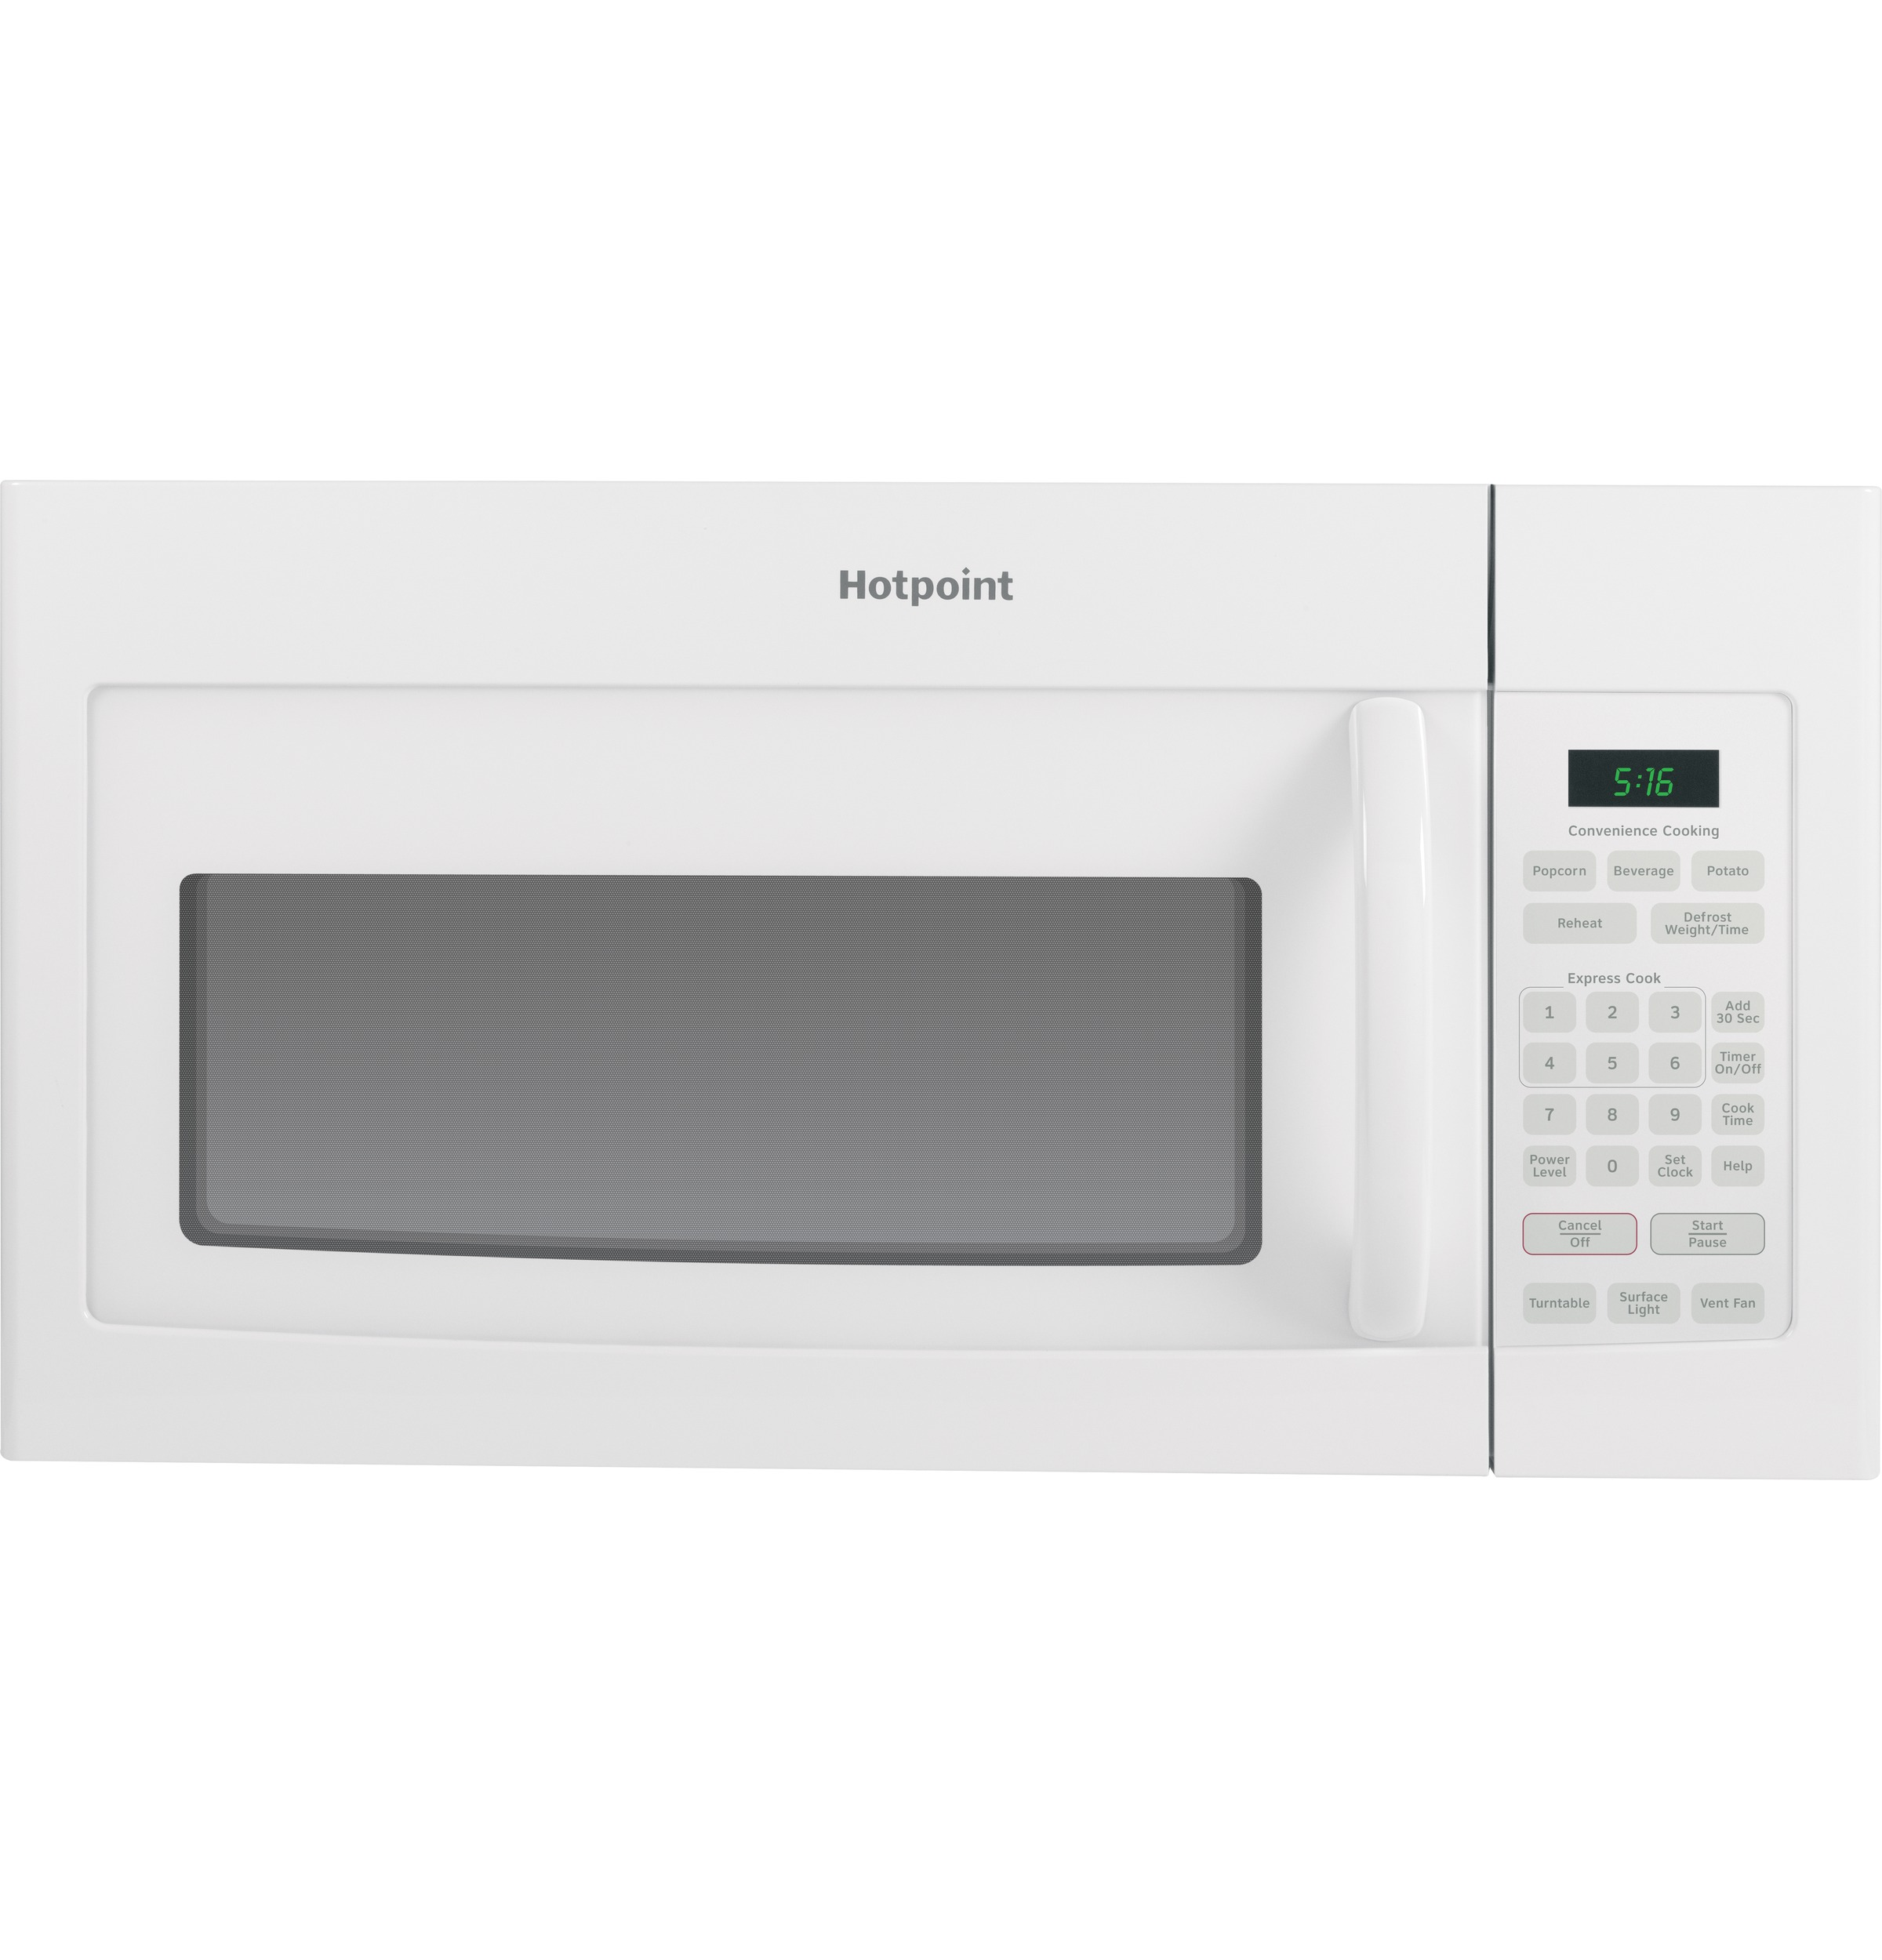 Hotpoint Hotpoint® 1.6 Cu. Ft. Over-the-Range Microwave Oven